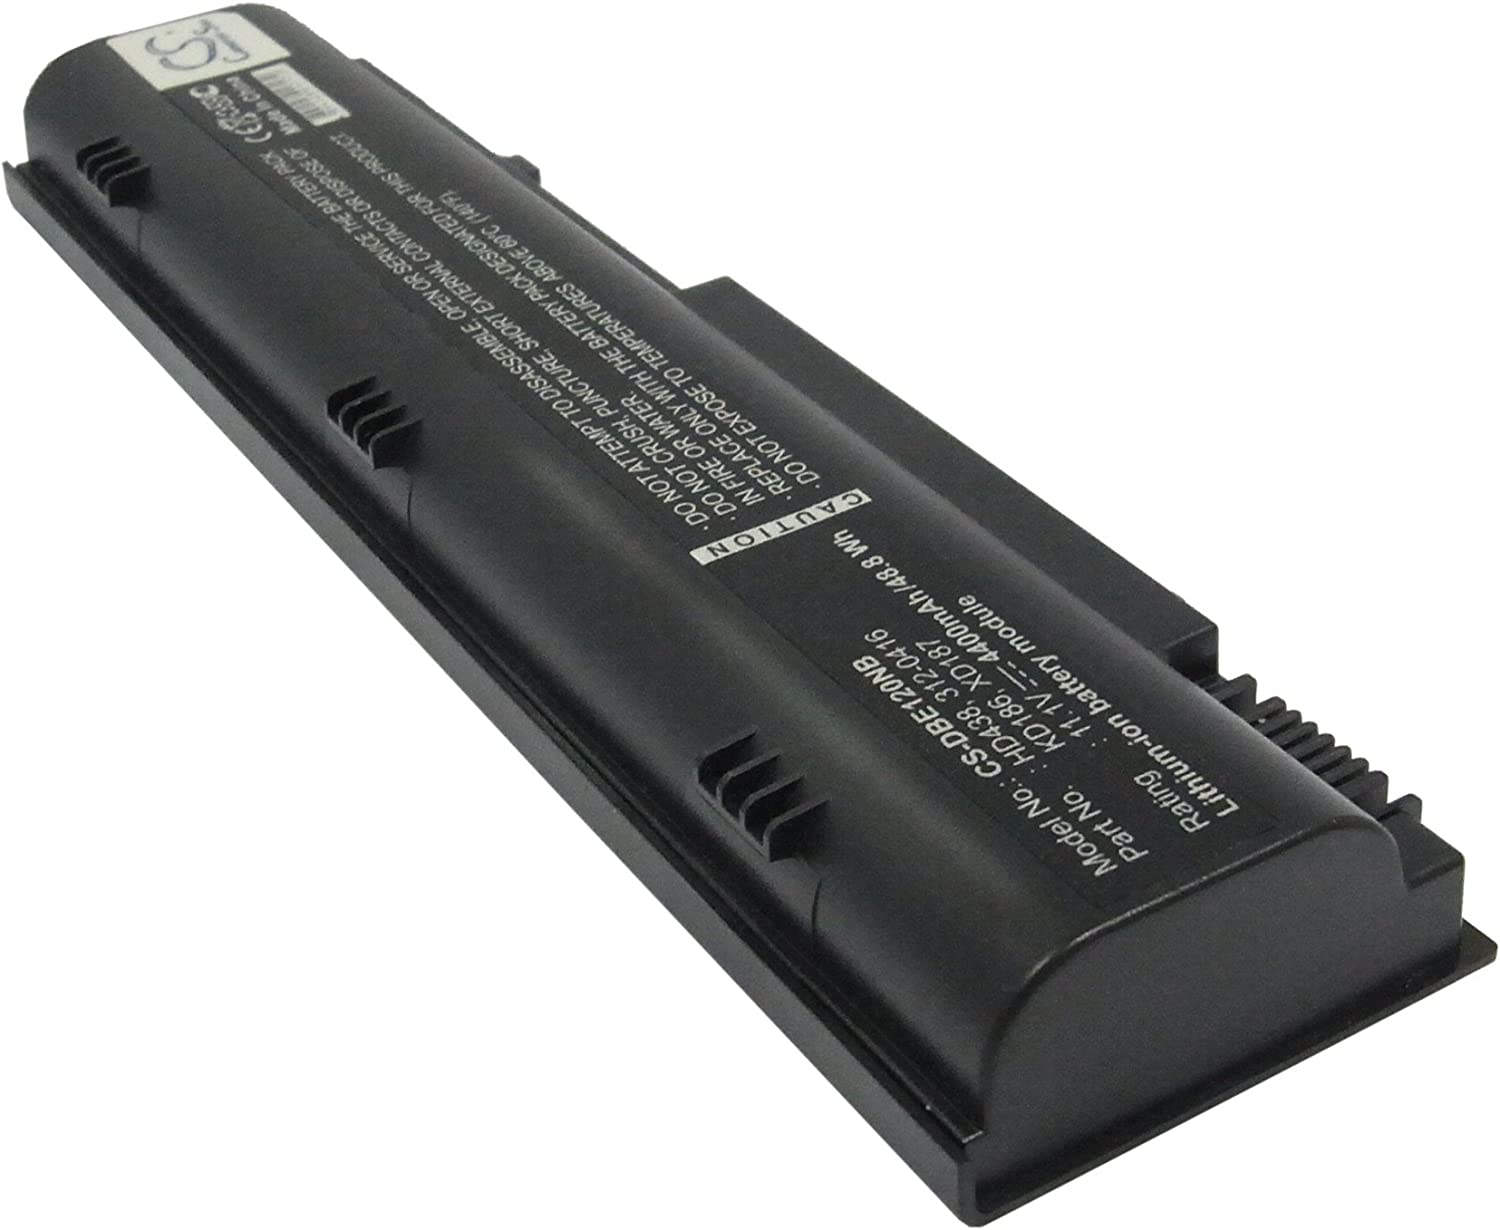 GAXI Battery for DELL Inspiron 1300, Inspiron B120, Inspiron B130 Replacement for P/N 312-0416, HD438, KD186